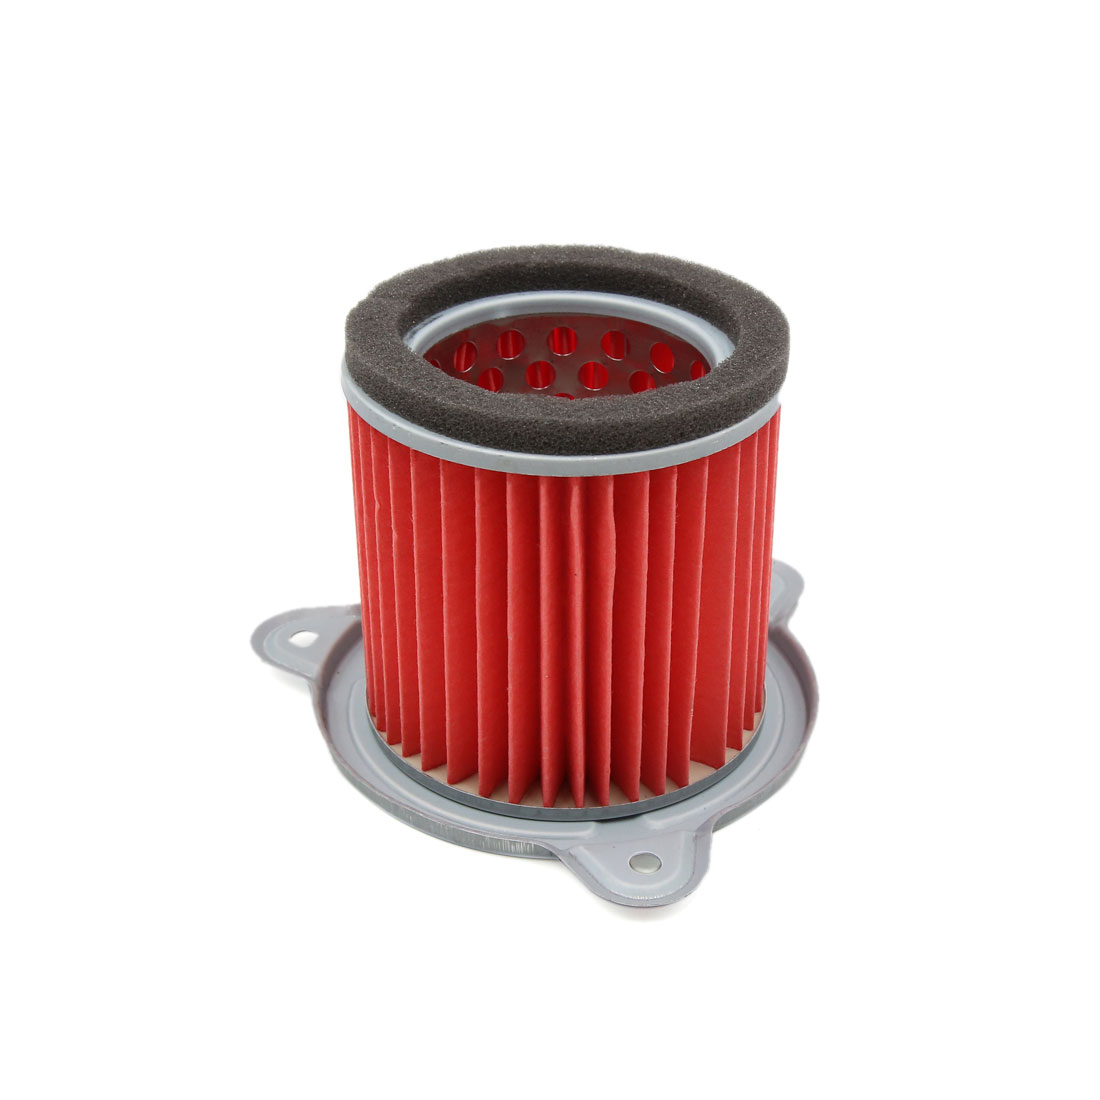 Motorcycle Air Intake Filter Cleaner Accessory for 87-00 Honda XL600V Transalp